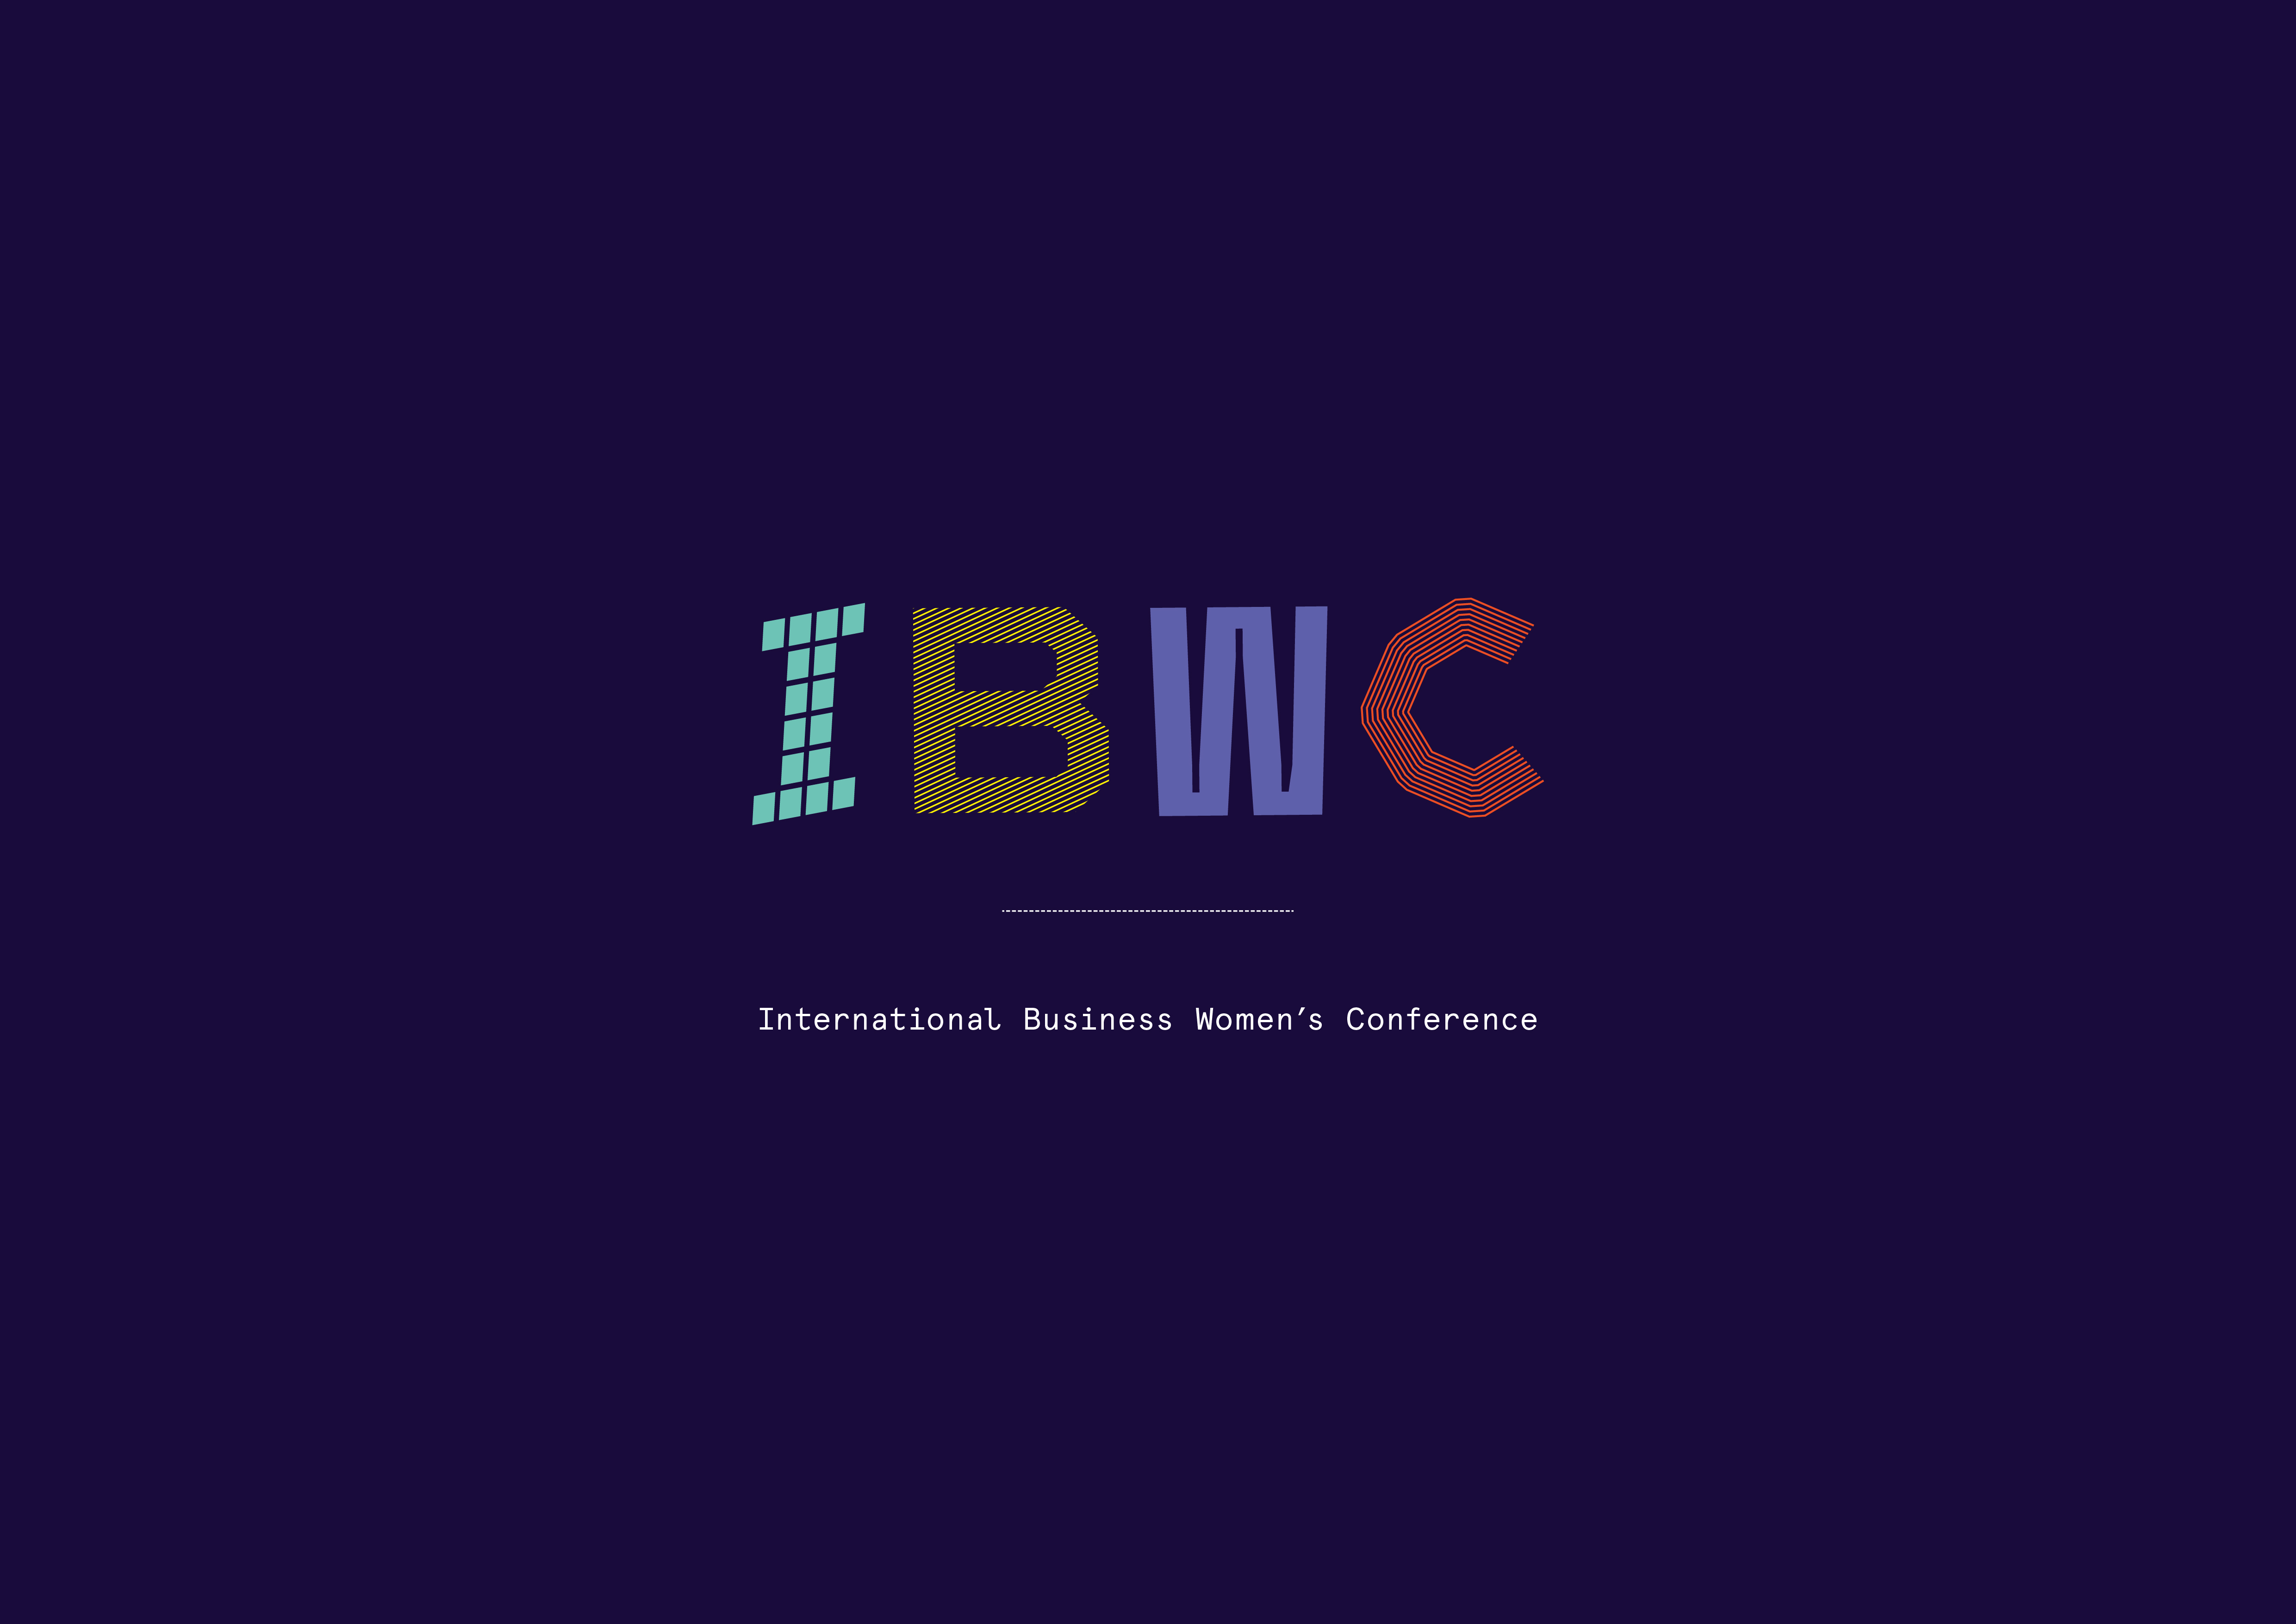 Cover image: International Business Women's Conference